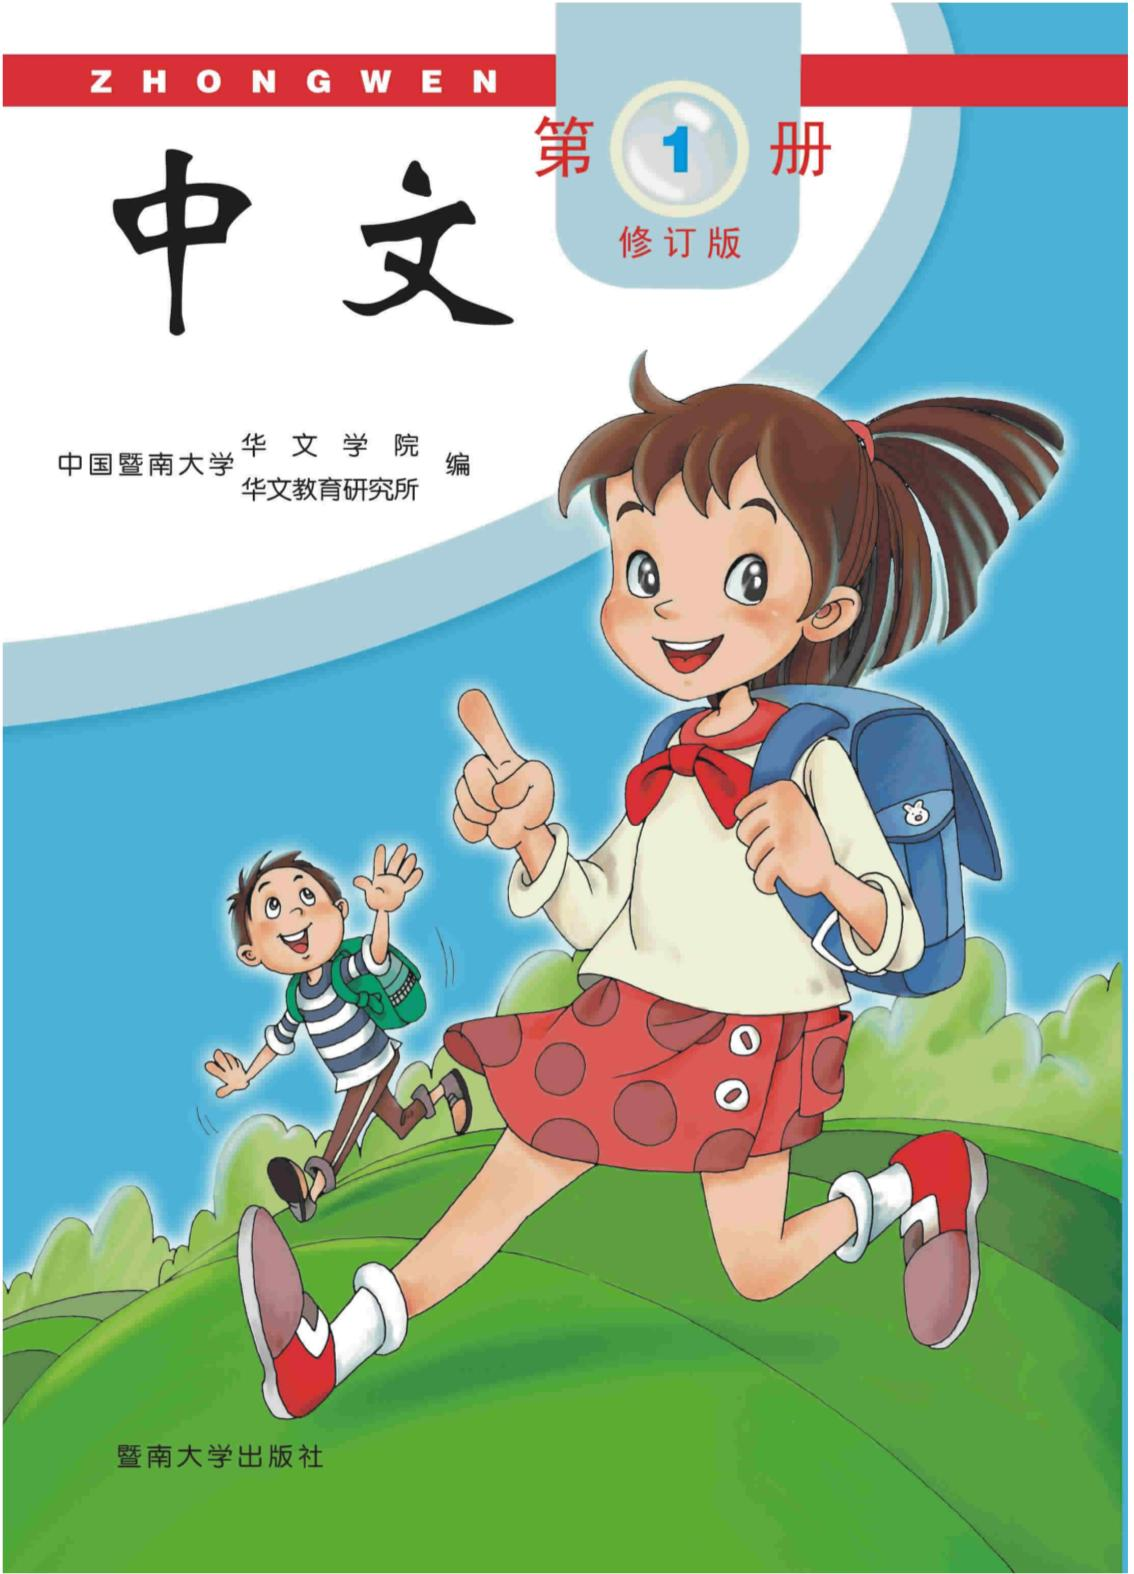 front cover of the textbook ZhongWen Revised Version Level 1